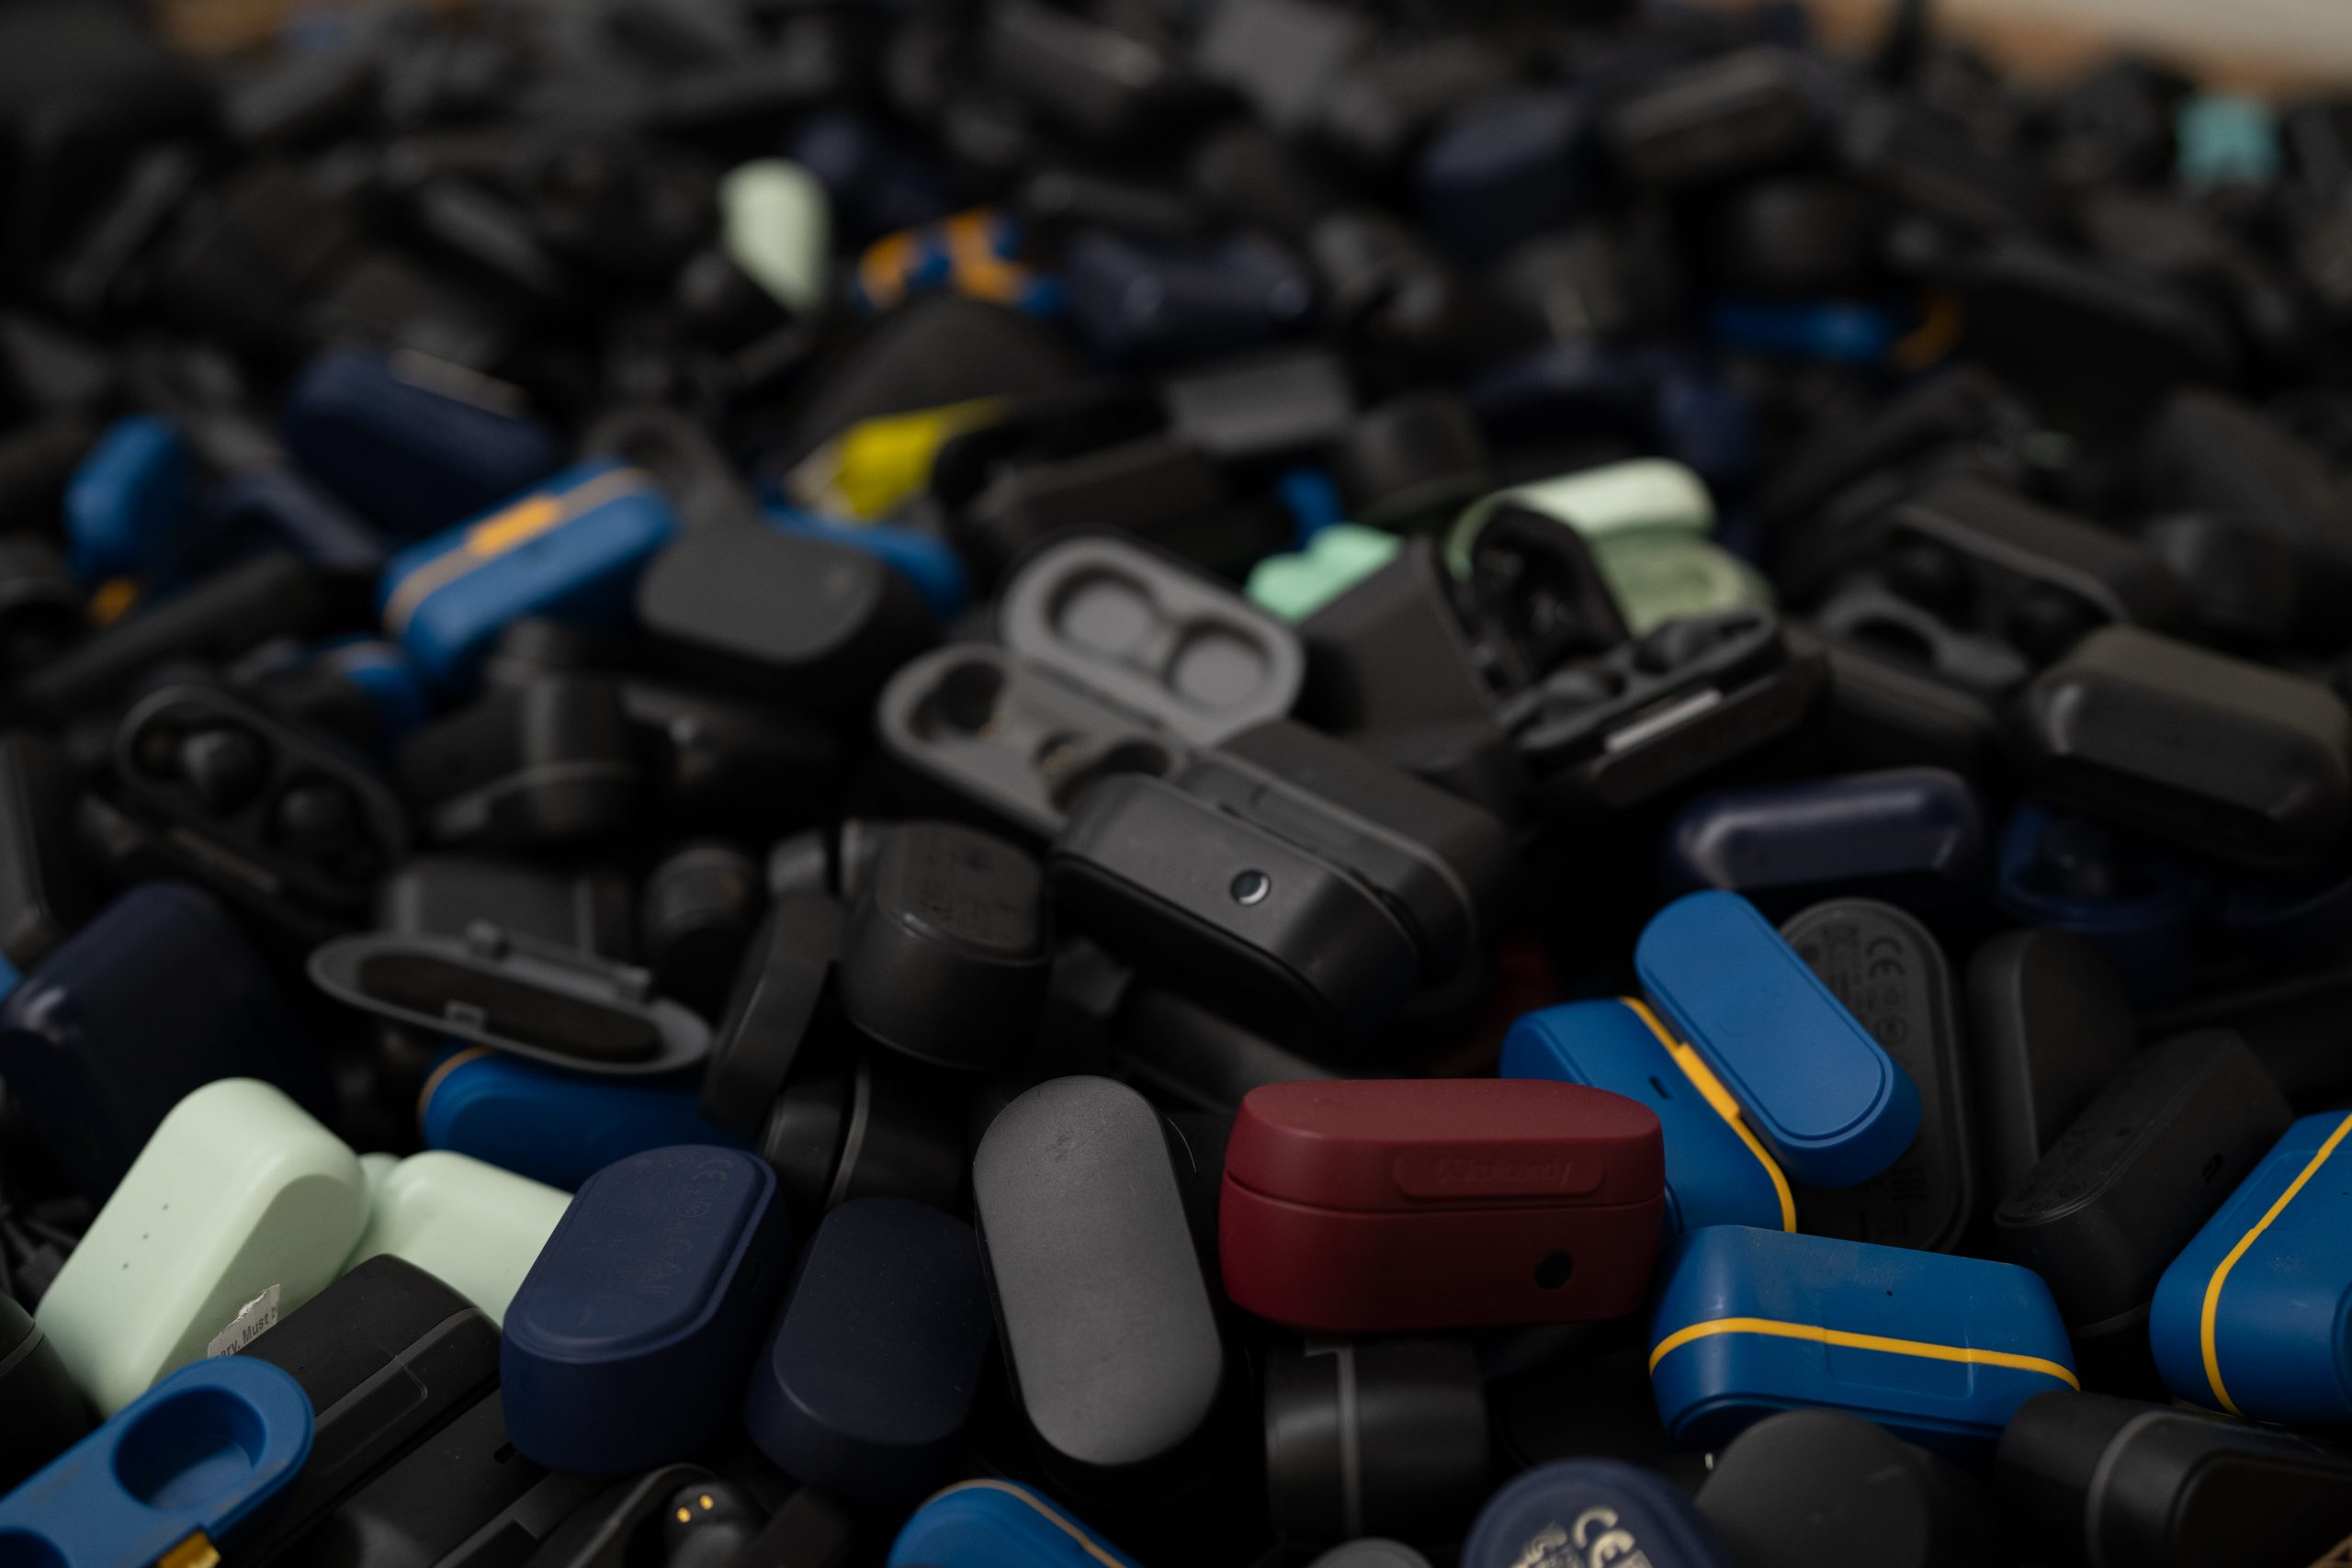 A pile of old Skullcandy wireless earbud charging cases